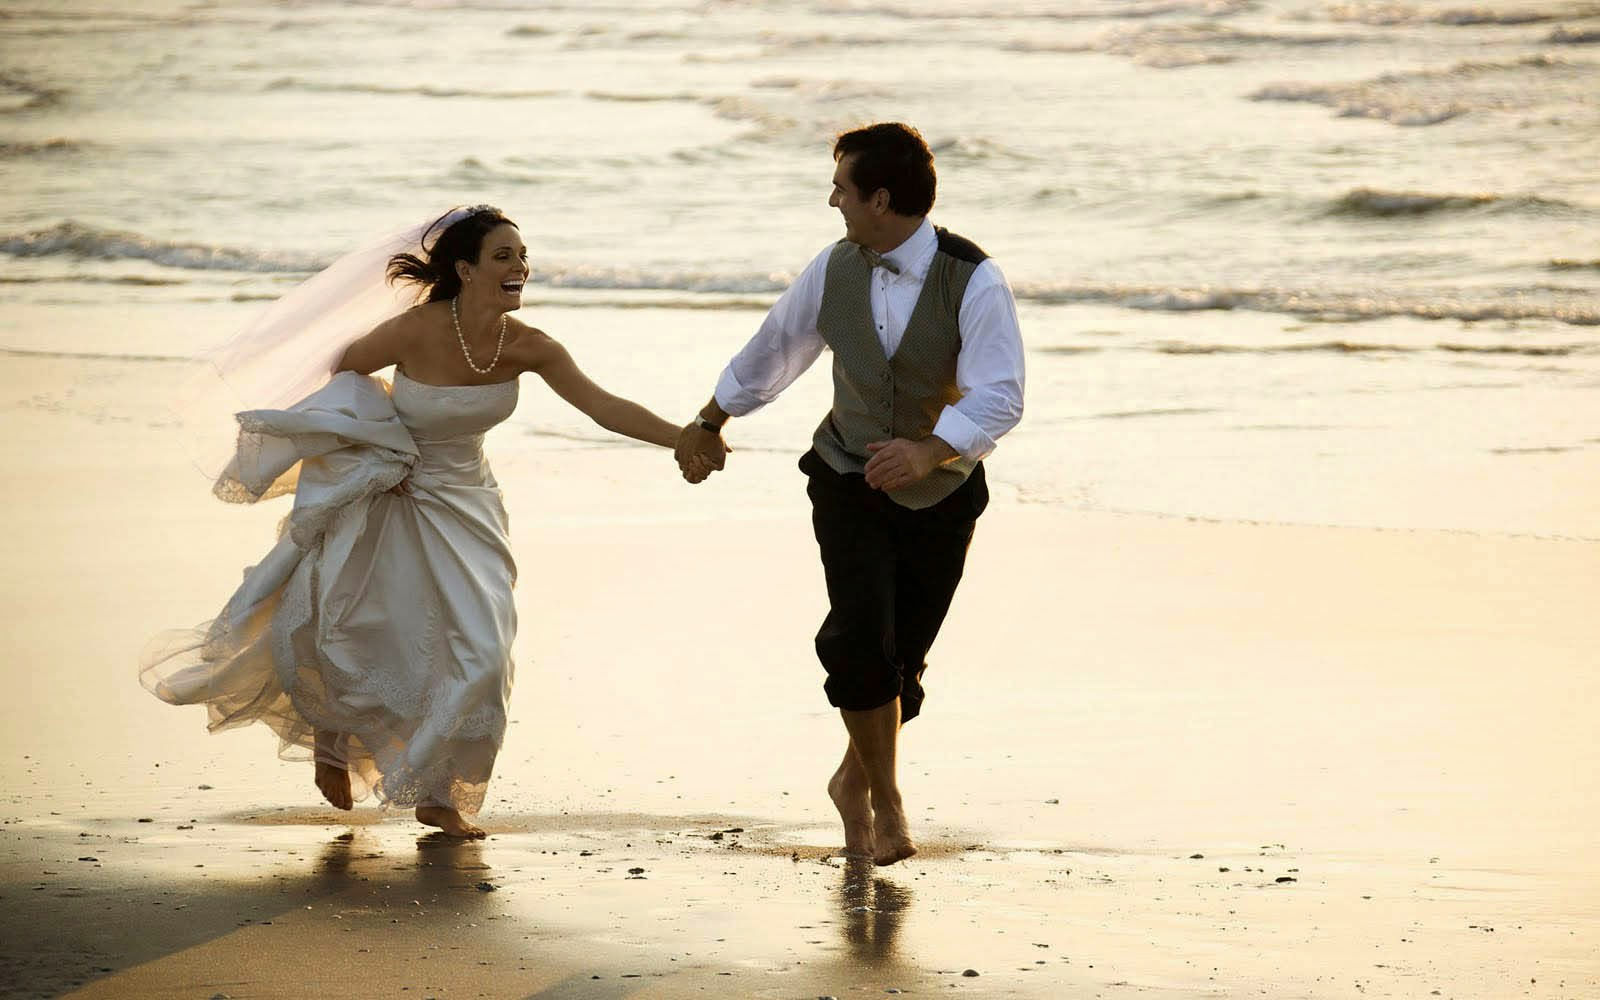 Lovely Wedding Couple Beach Wallpaper